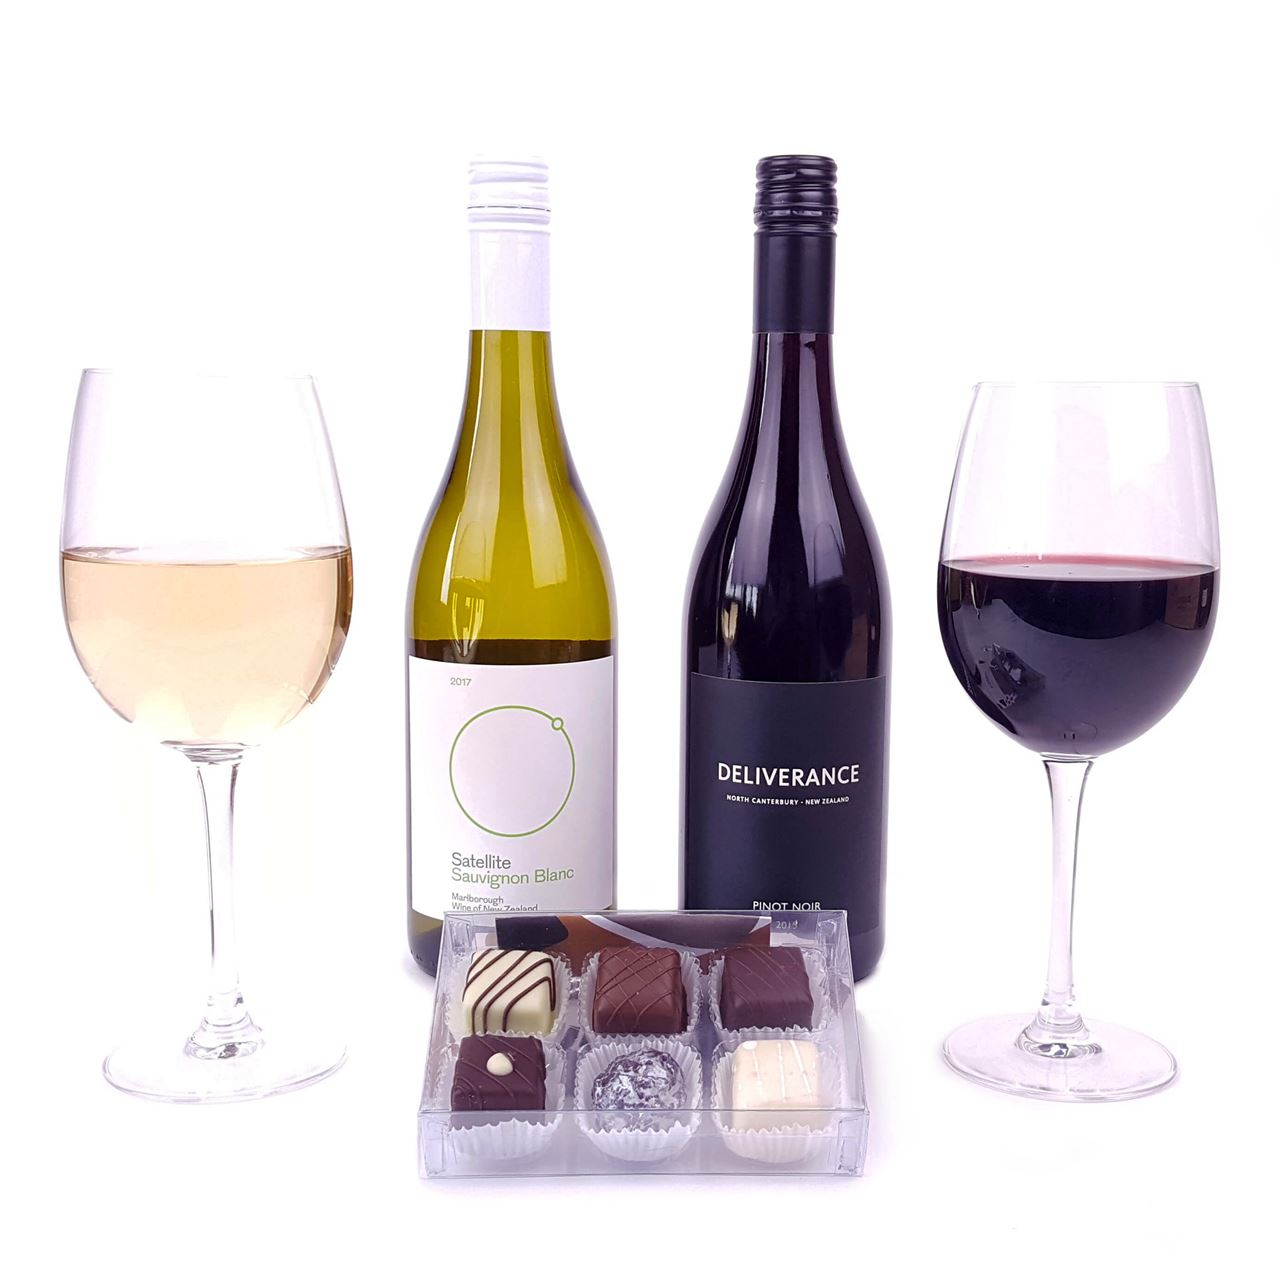 Nz wine and chocolates free delivery flying flowers picture of two new zealand wines and chocolates negle Choice Image